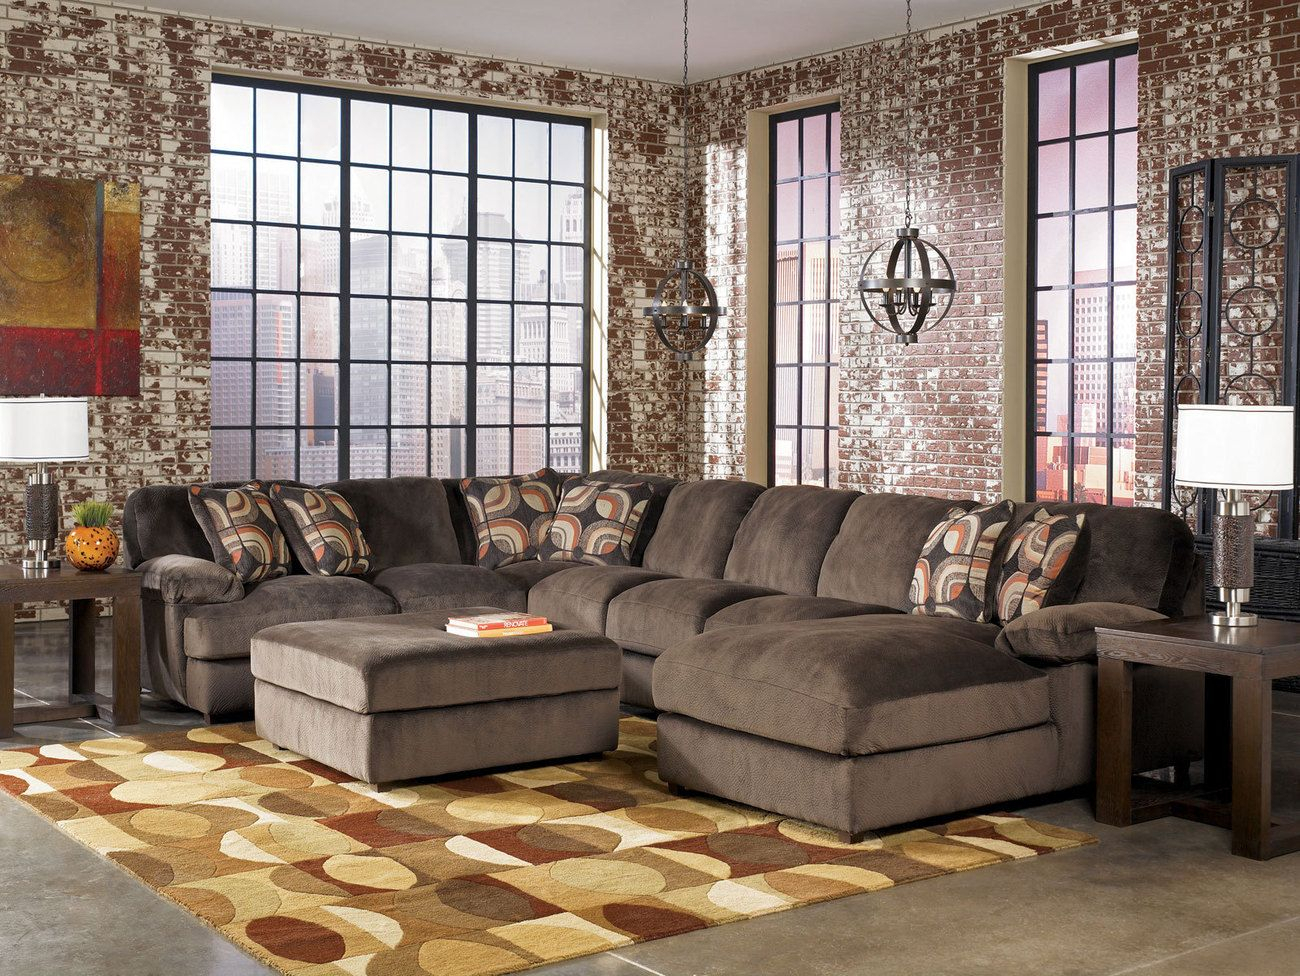 Oversized Sectional Sofas | Best Sofa Design | Large In Extra Large Sectional Sofas (View 7 of 15)